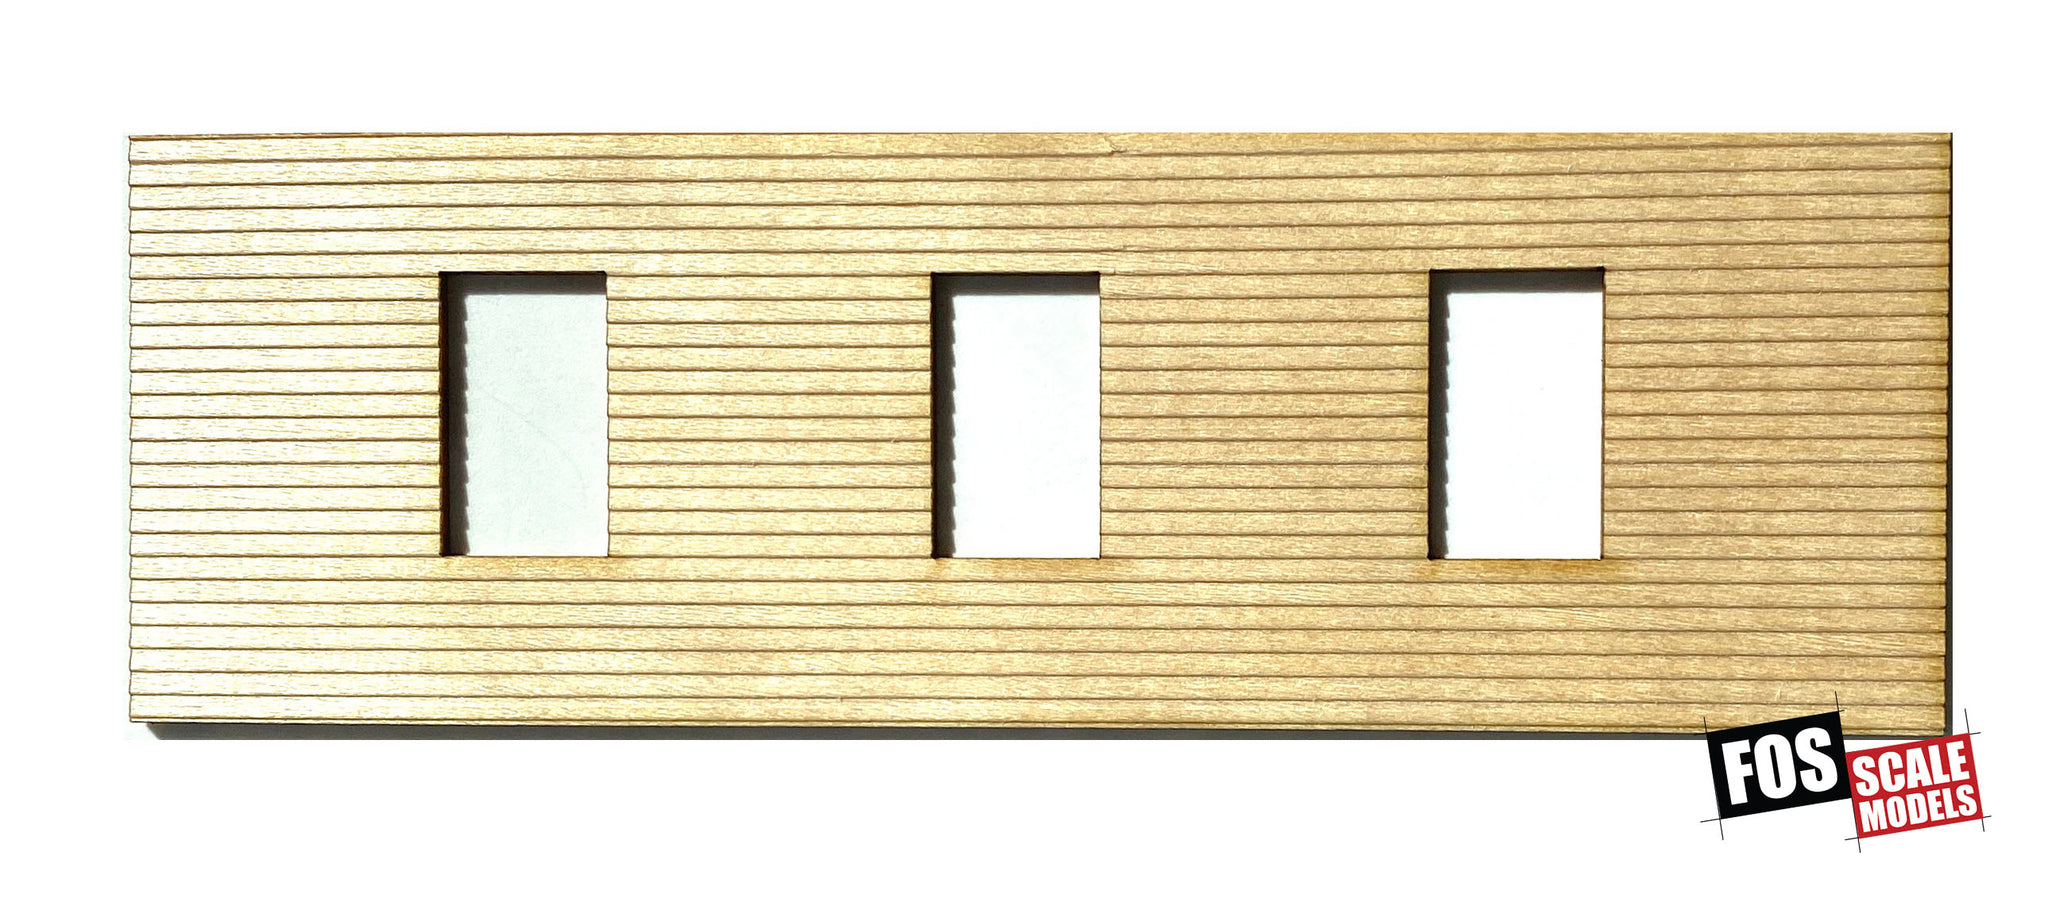 CLAPBOARD WALL SECTION - D105 HO SCALE